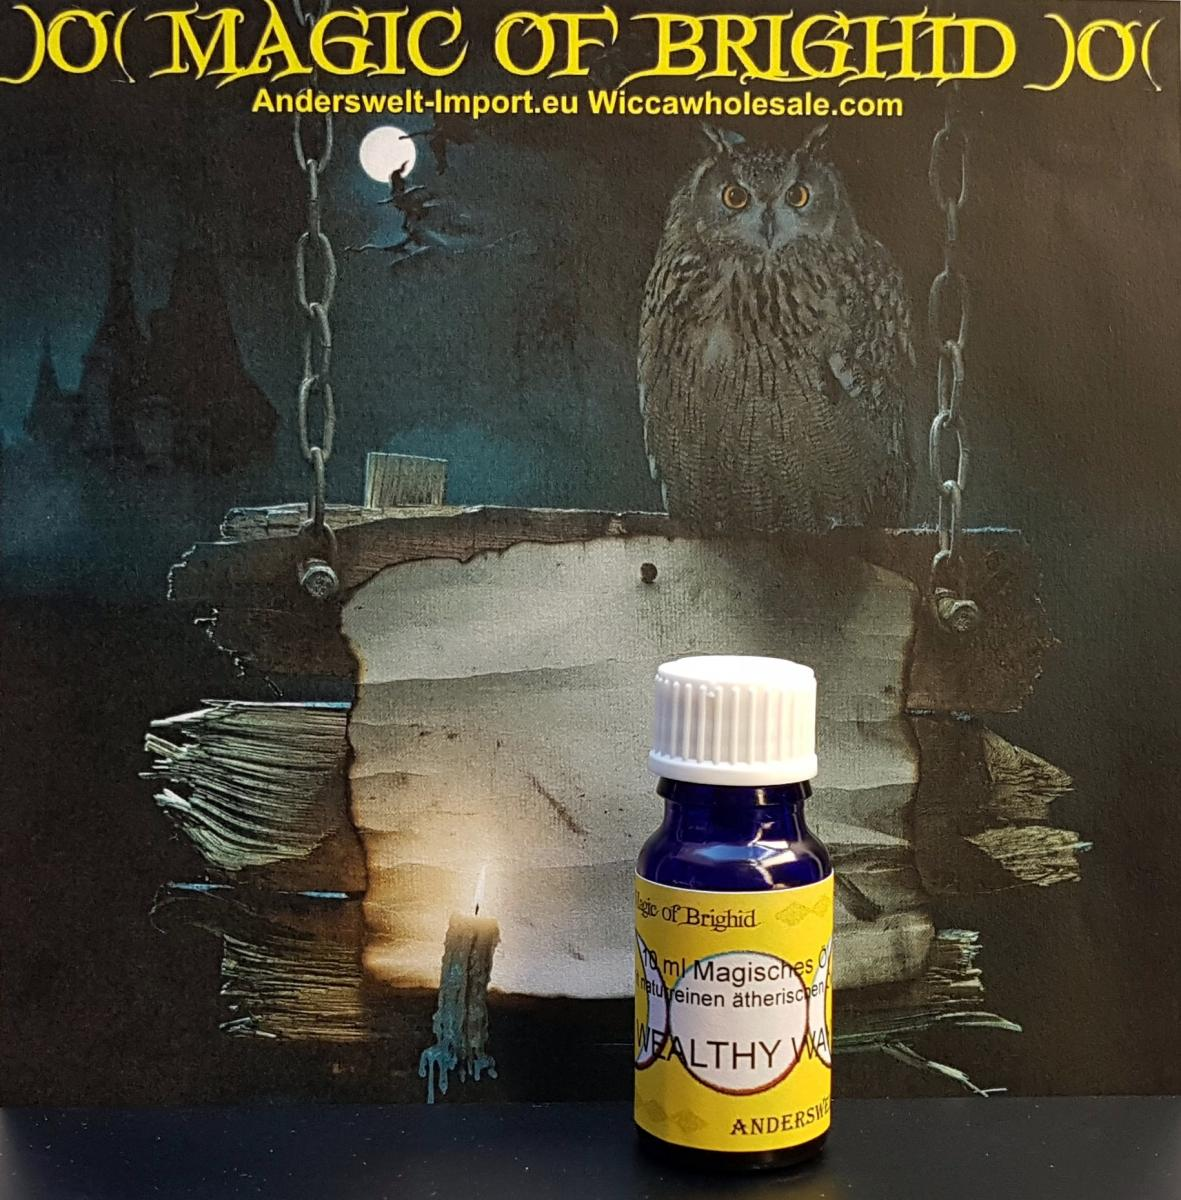 wealthy way oil spells, vision spells,  baby witchtok, junghexen